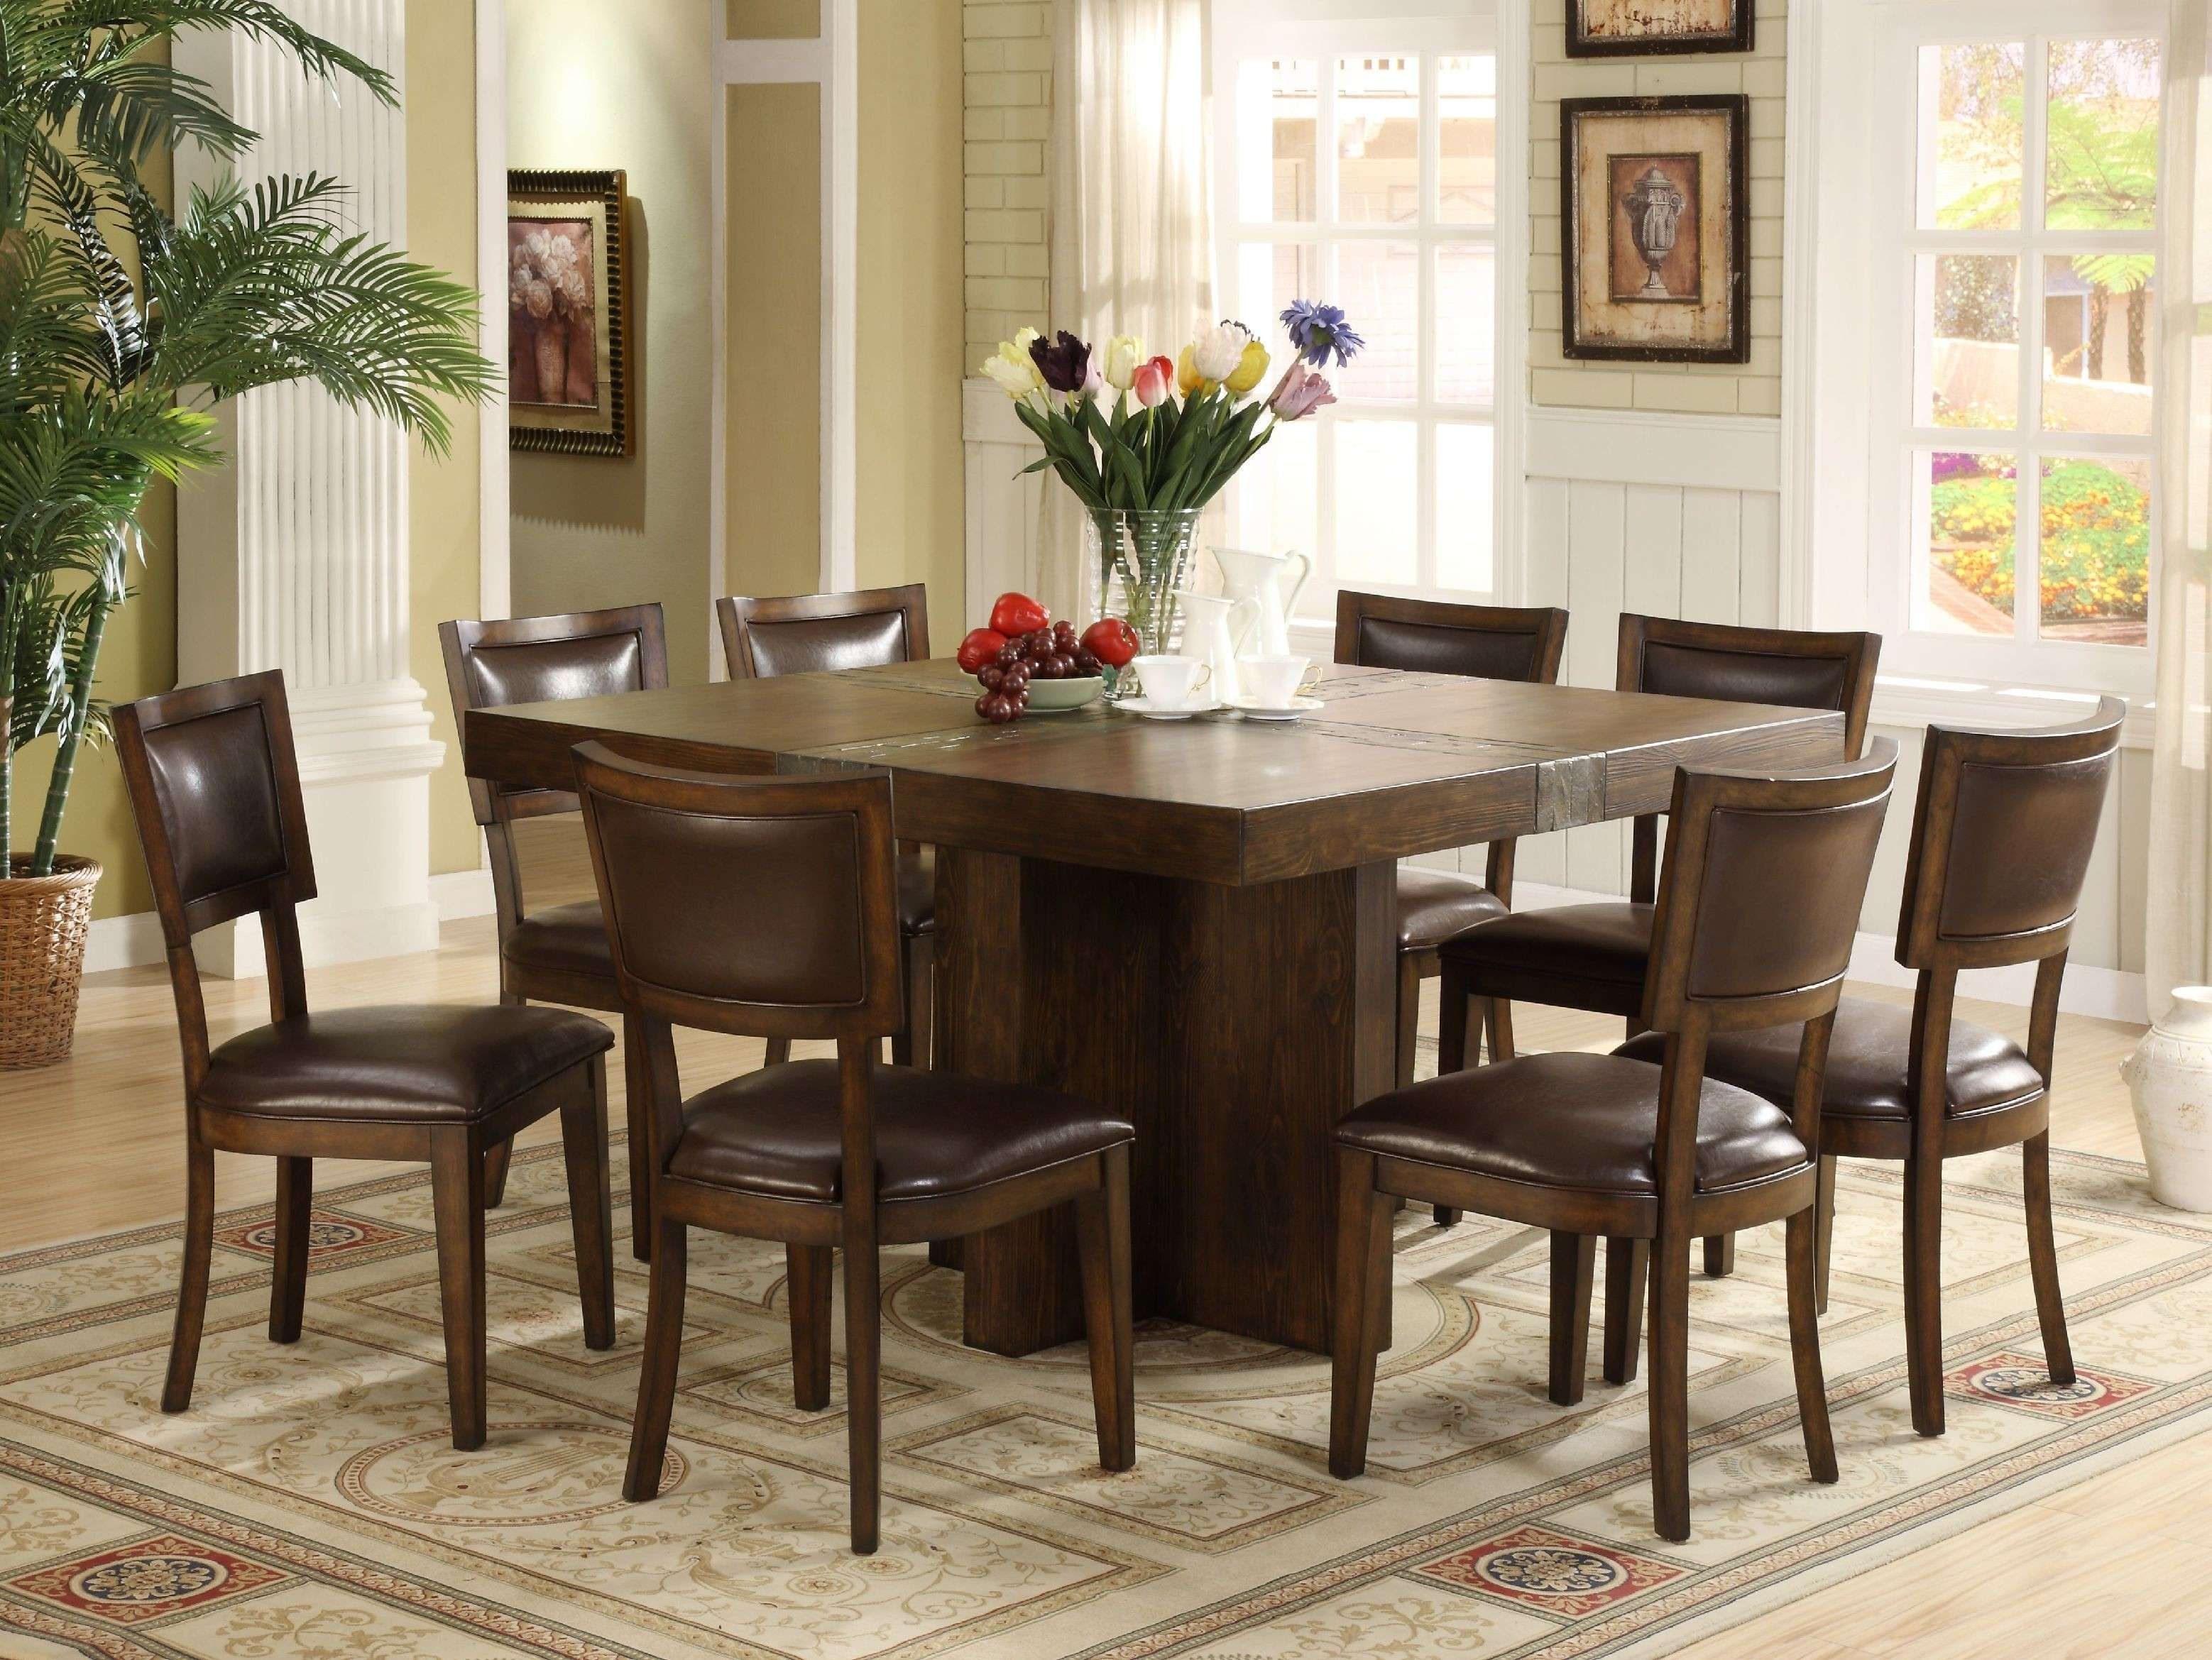 Latest Dining Room Renovations July 2018 Square Dining Room Table Square Dining Tables Dining Table Bases